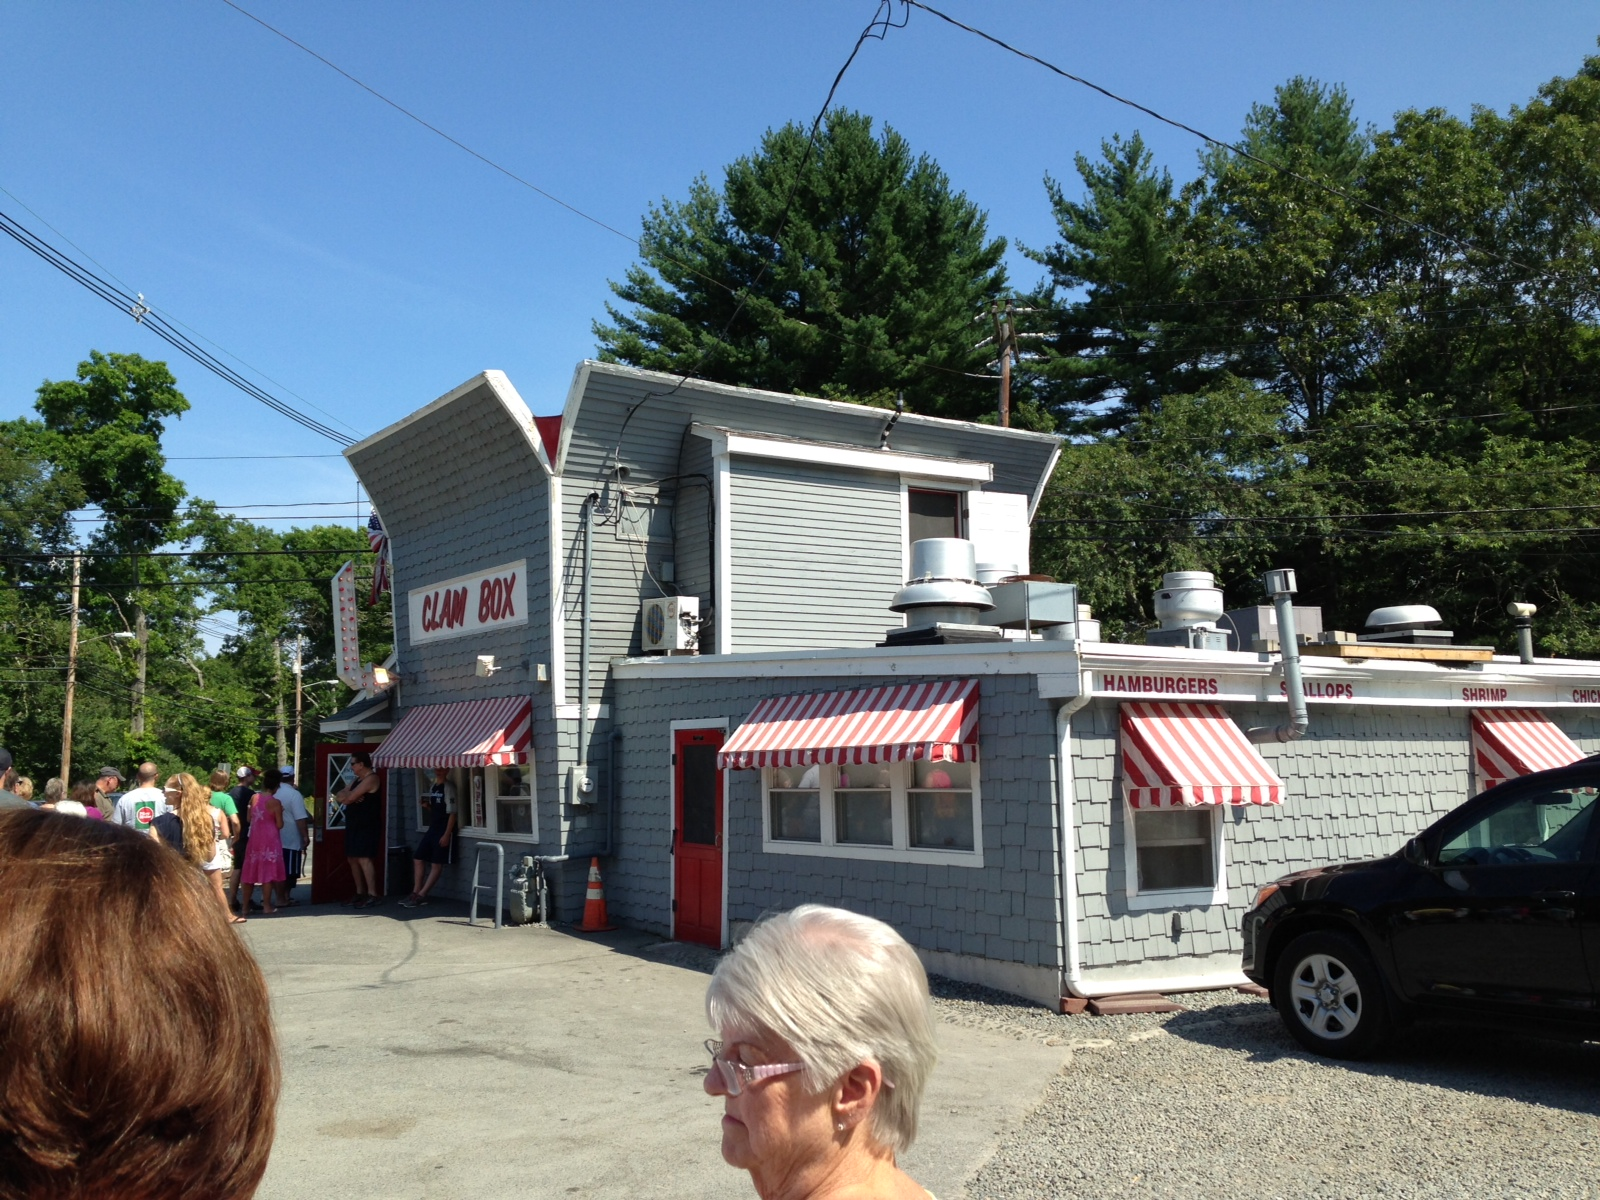 The Clam Box of Ipswitch, MA; an interesting hybrid of the Duck vs the Decorated Shed debate.